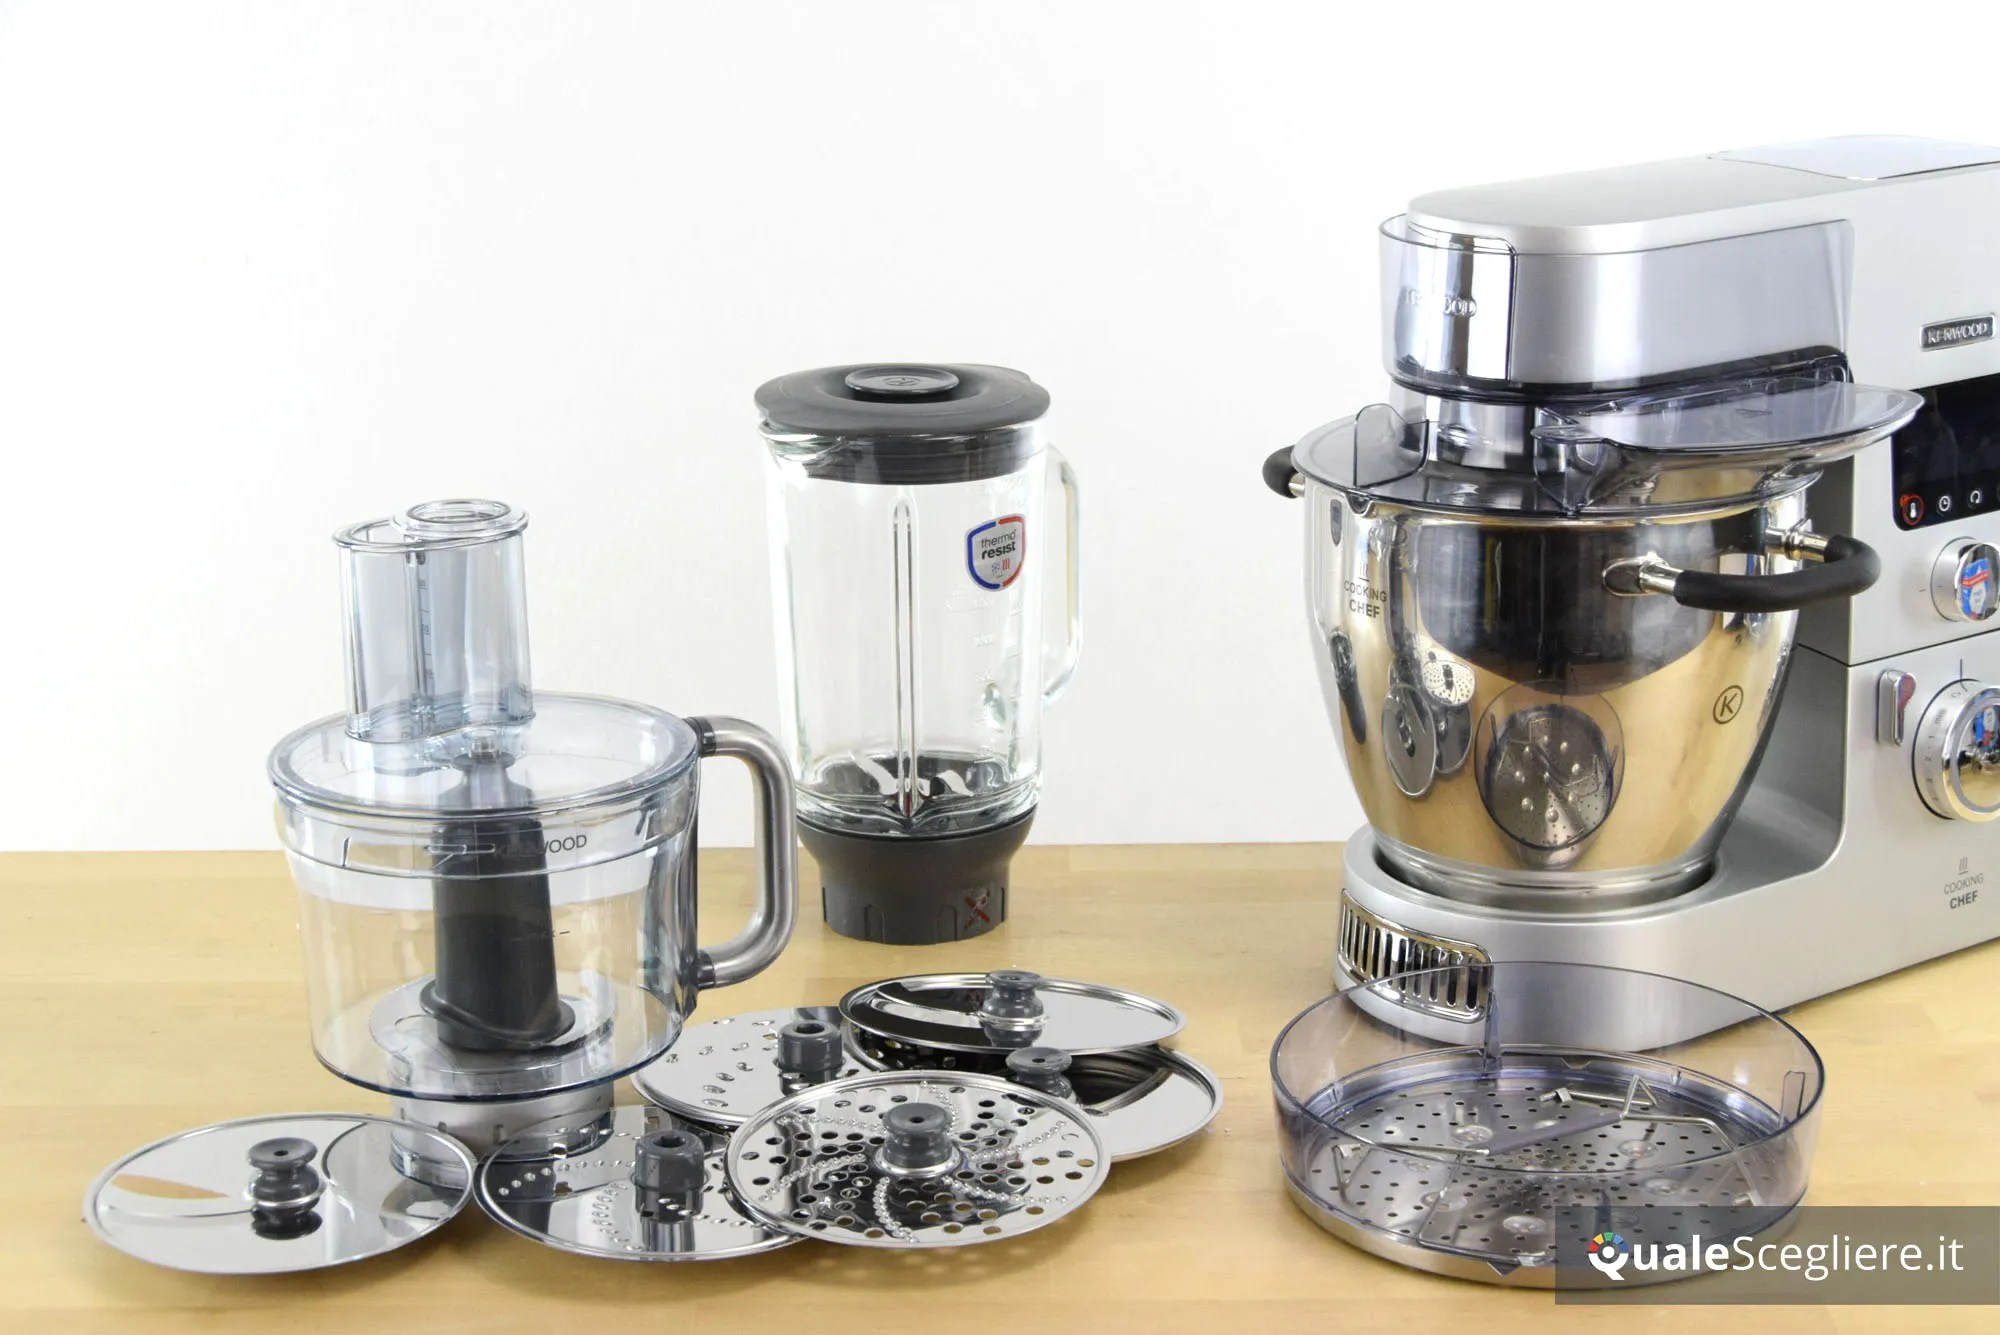 Cooking Chef Gourmet Kcc9063s | Cooking Chef Premium Km099